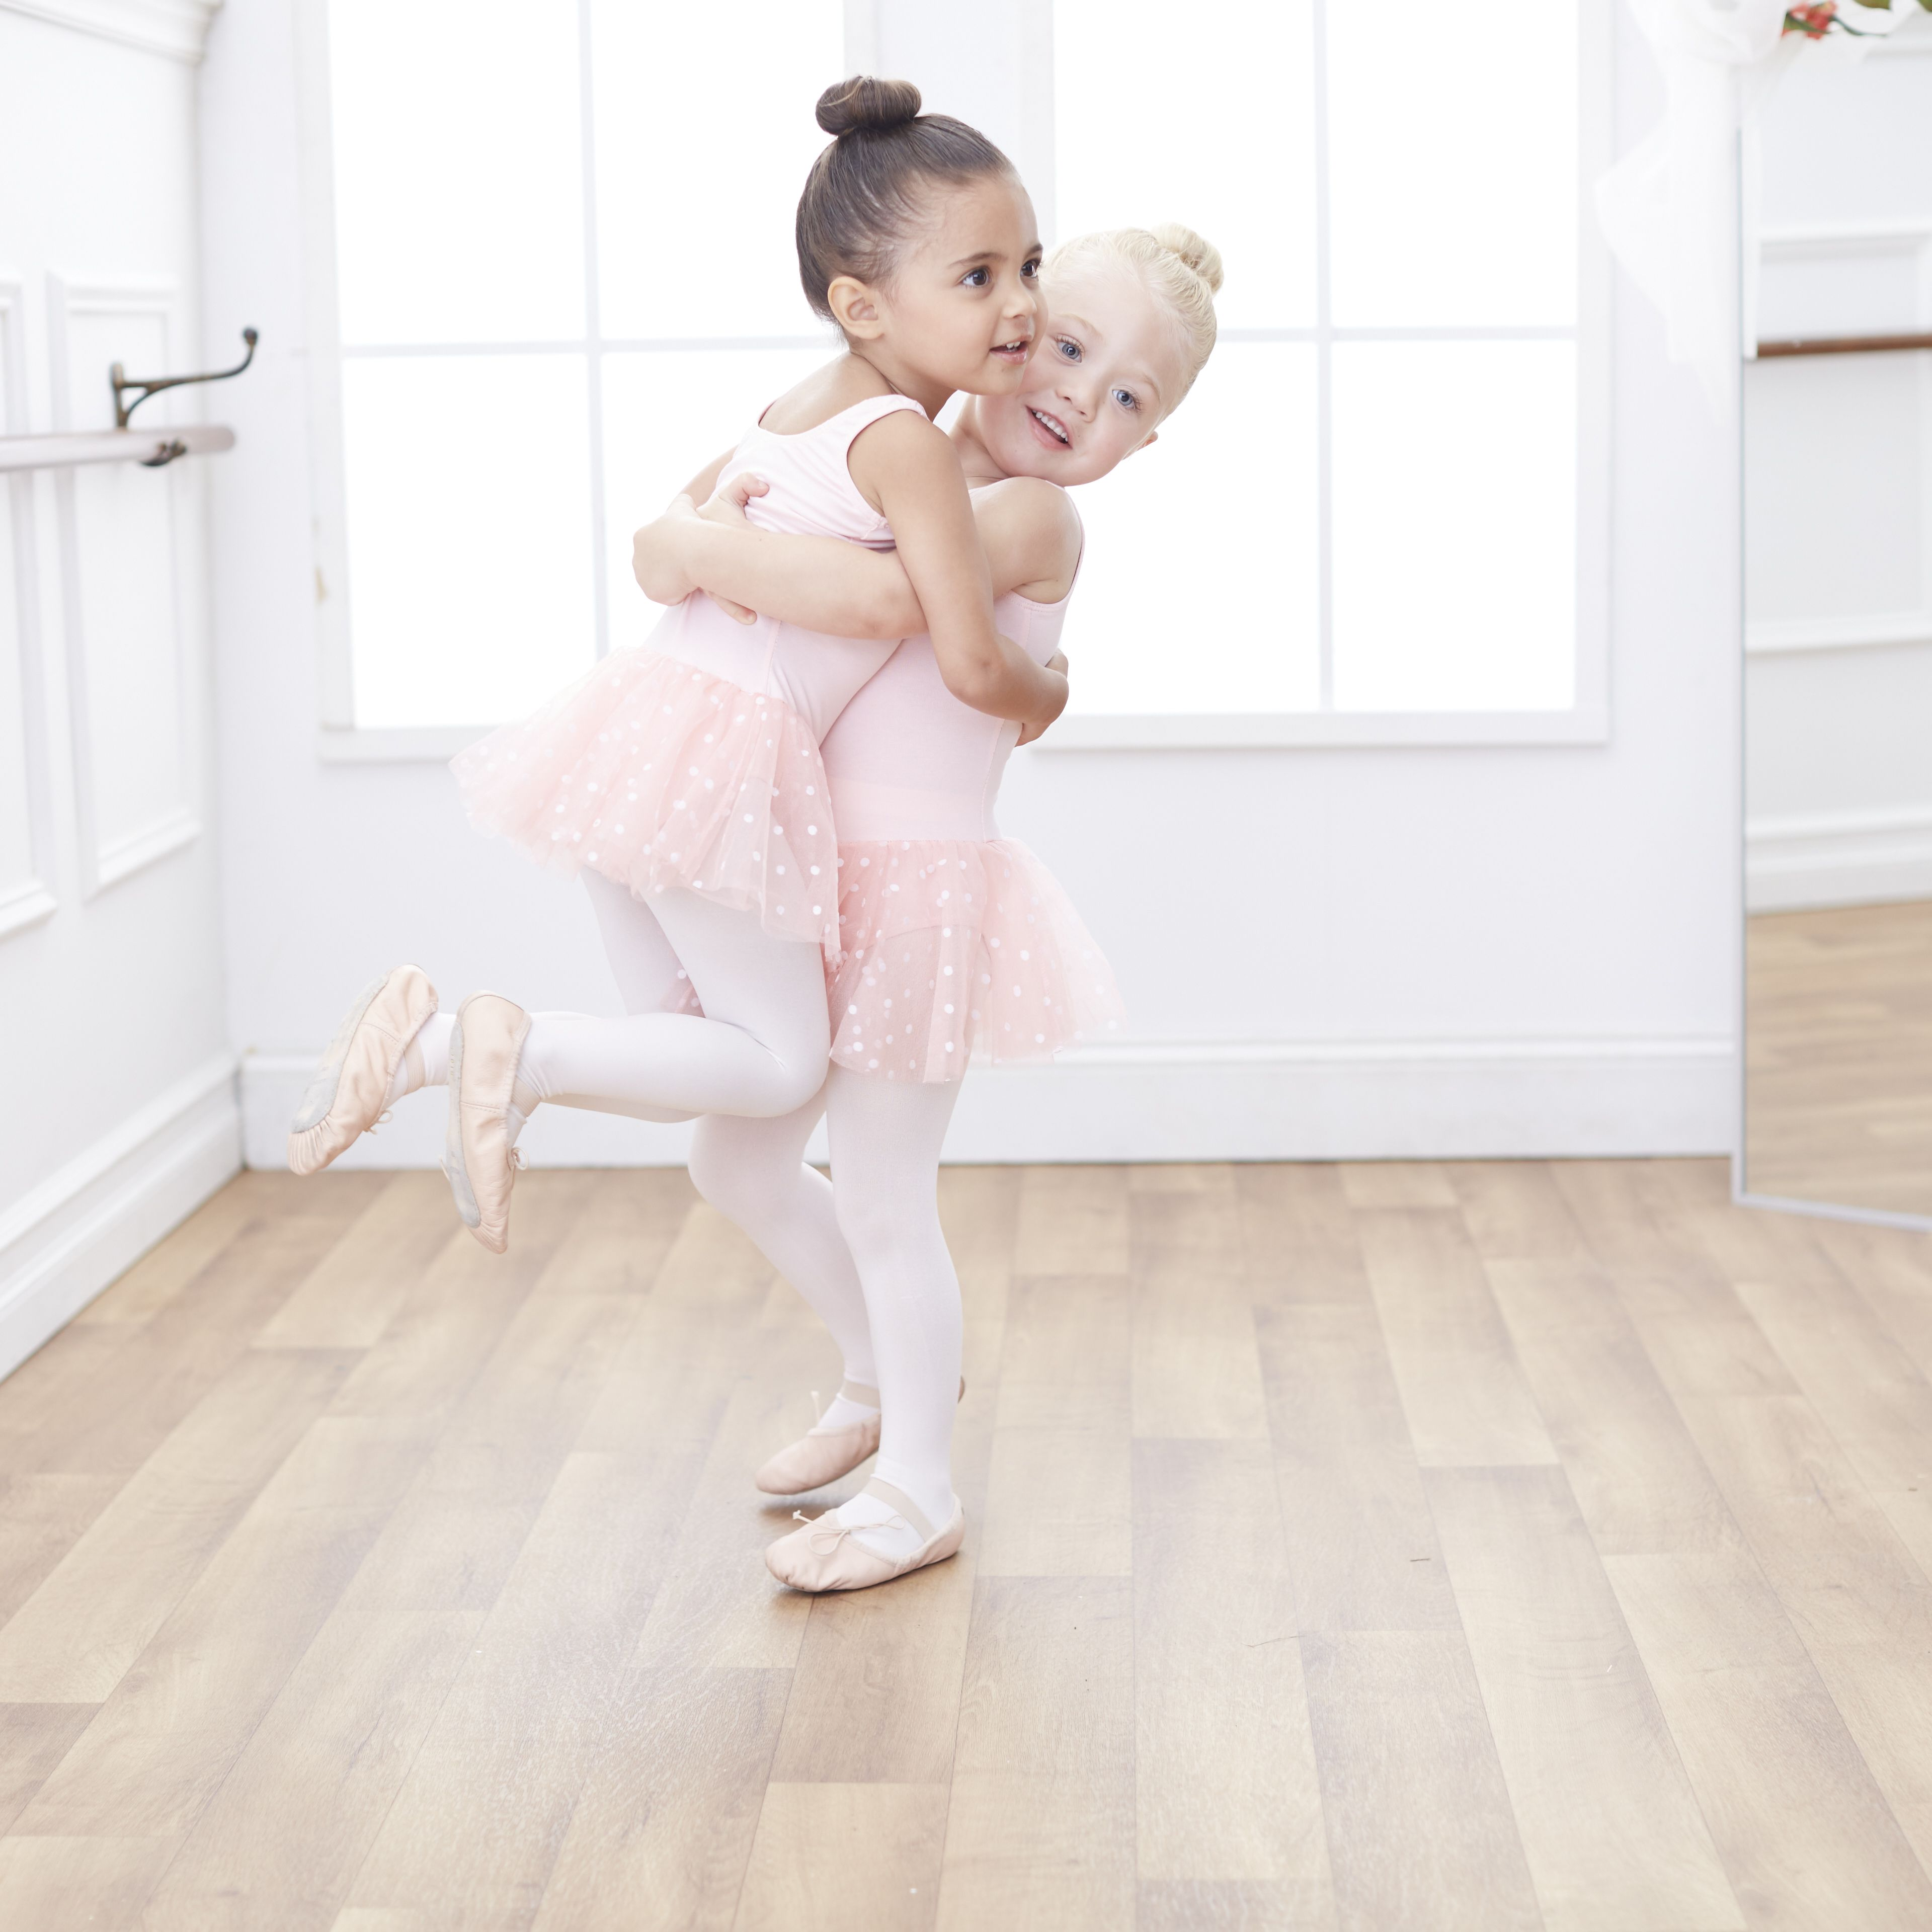 57476532a 3-year-old  besties Ever and Ava love to learn new dance moves ...